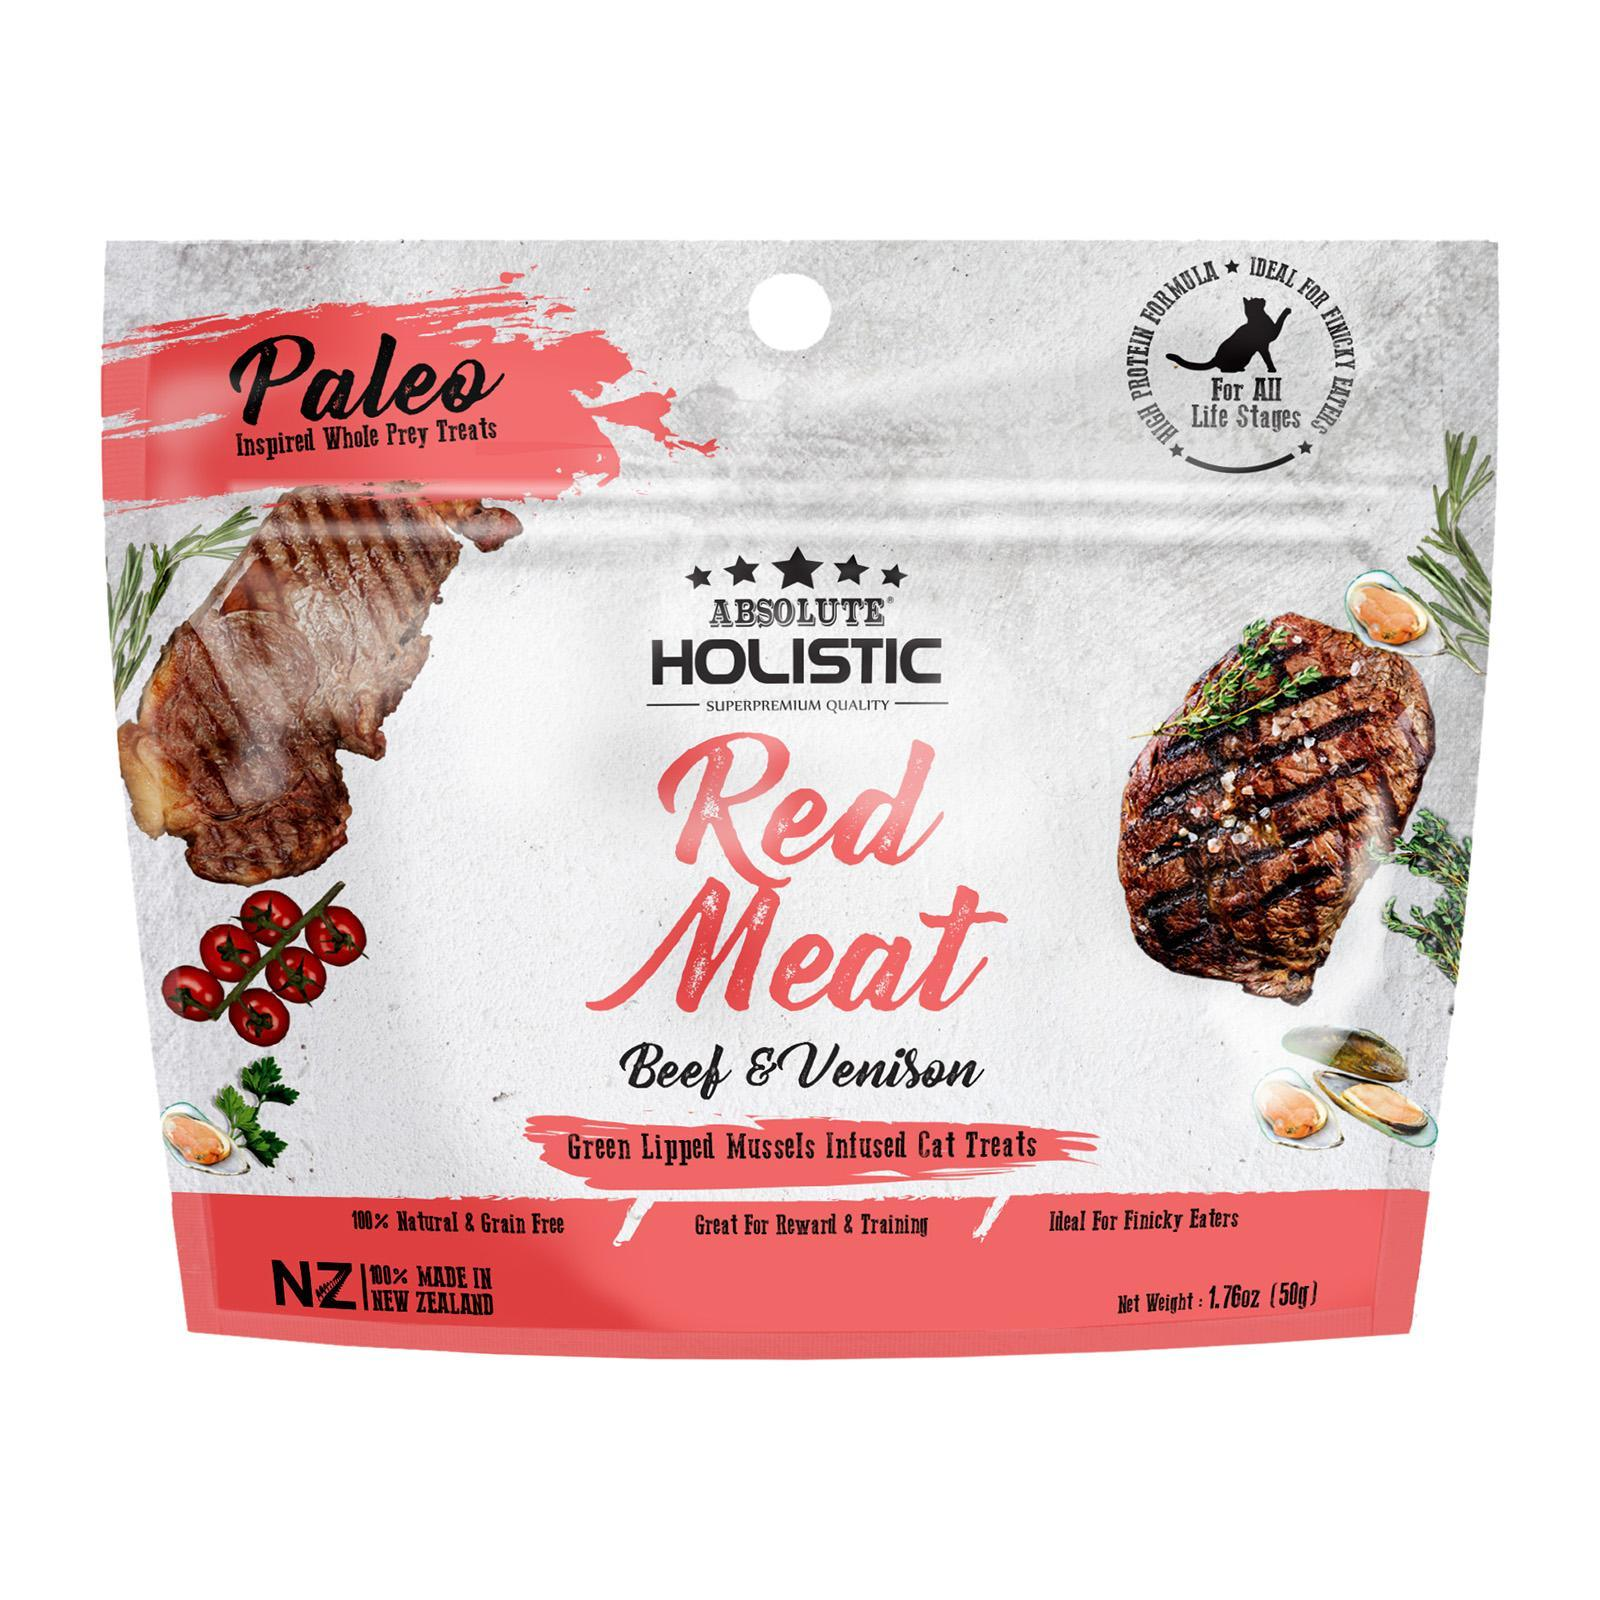 Absolute Holistic Air Dried Cat Treats (Red Meat)